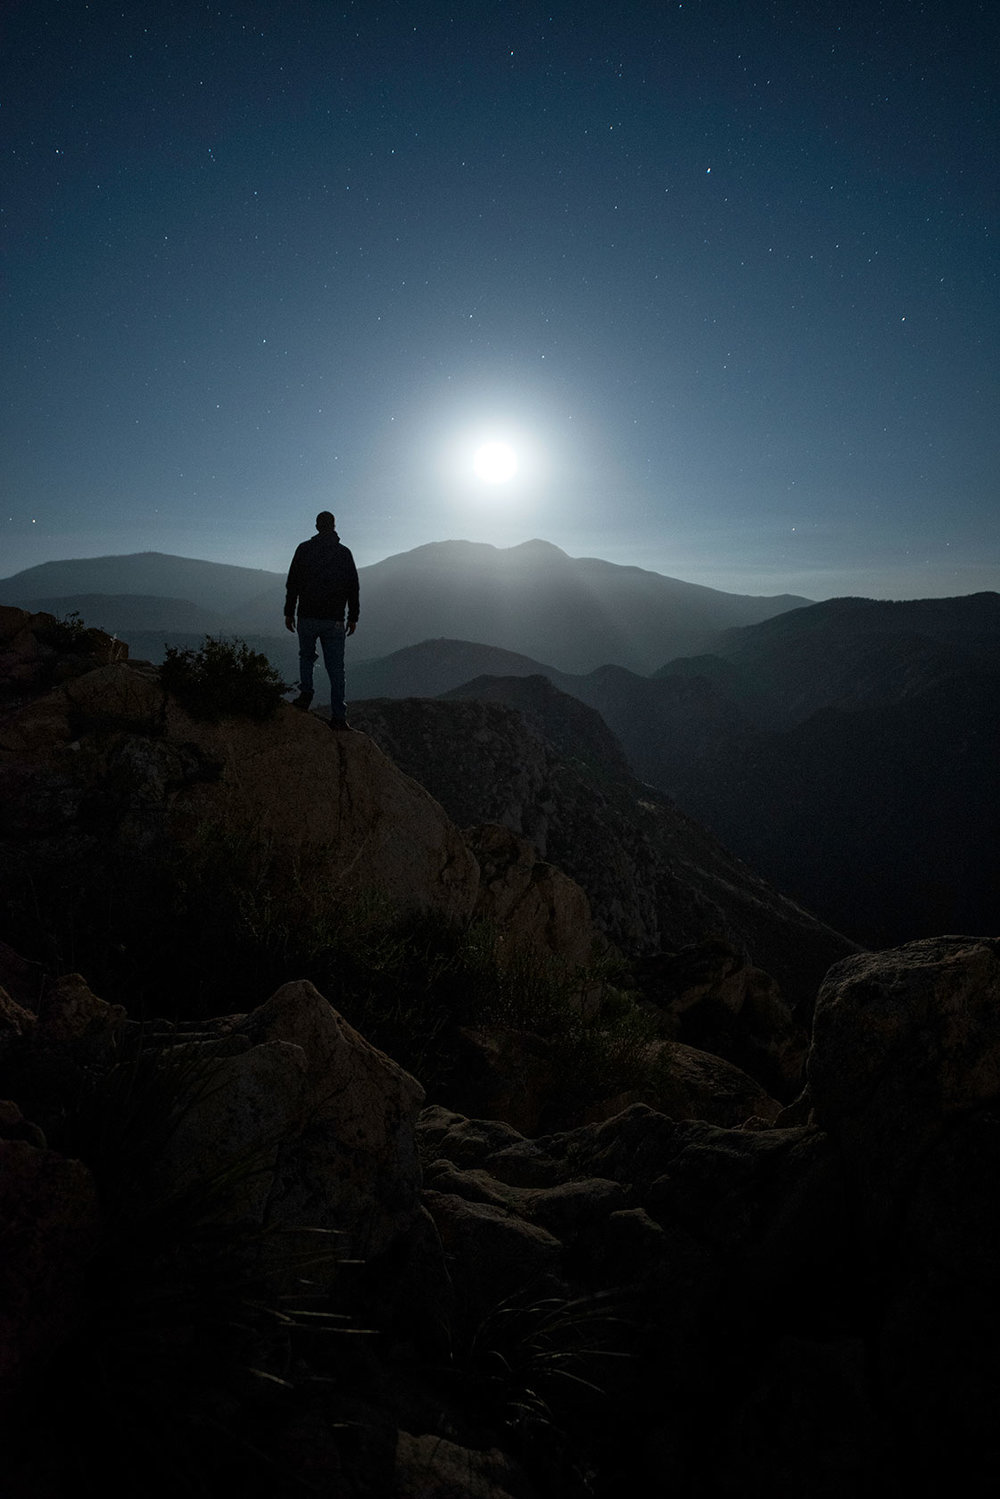 austin-trigg-southern-california-rising-moon-desert-mountains-moonrise-night-adventure.jpg